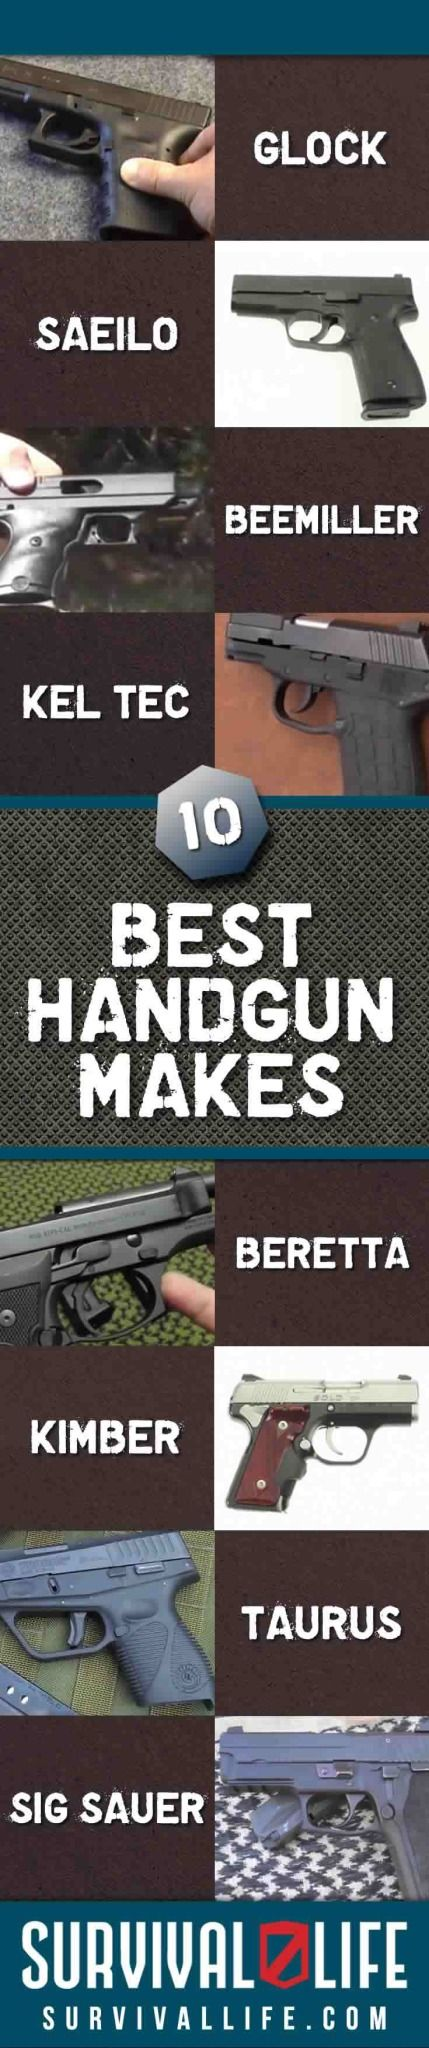 Top 10 Handgun Makes in the US - Guns and Ammo Tips for Self Defense by Survival Life Prepping